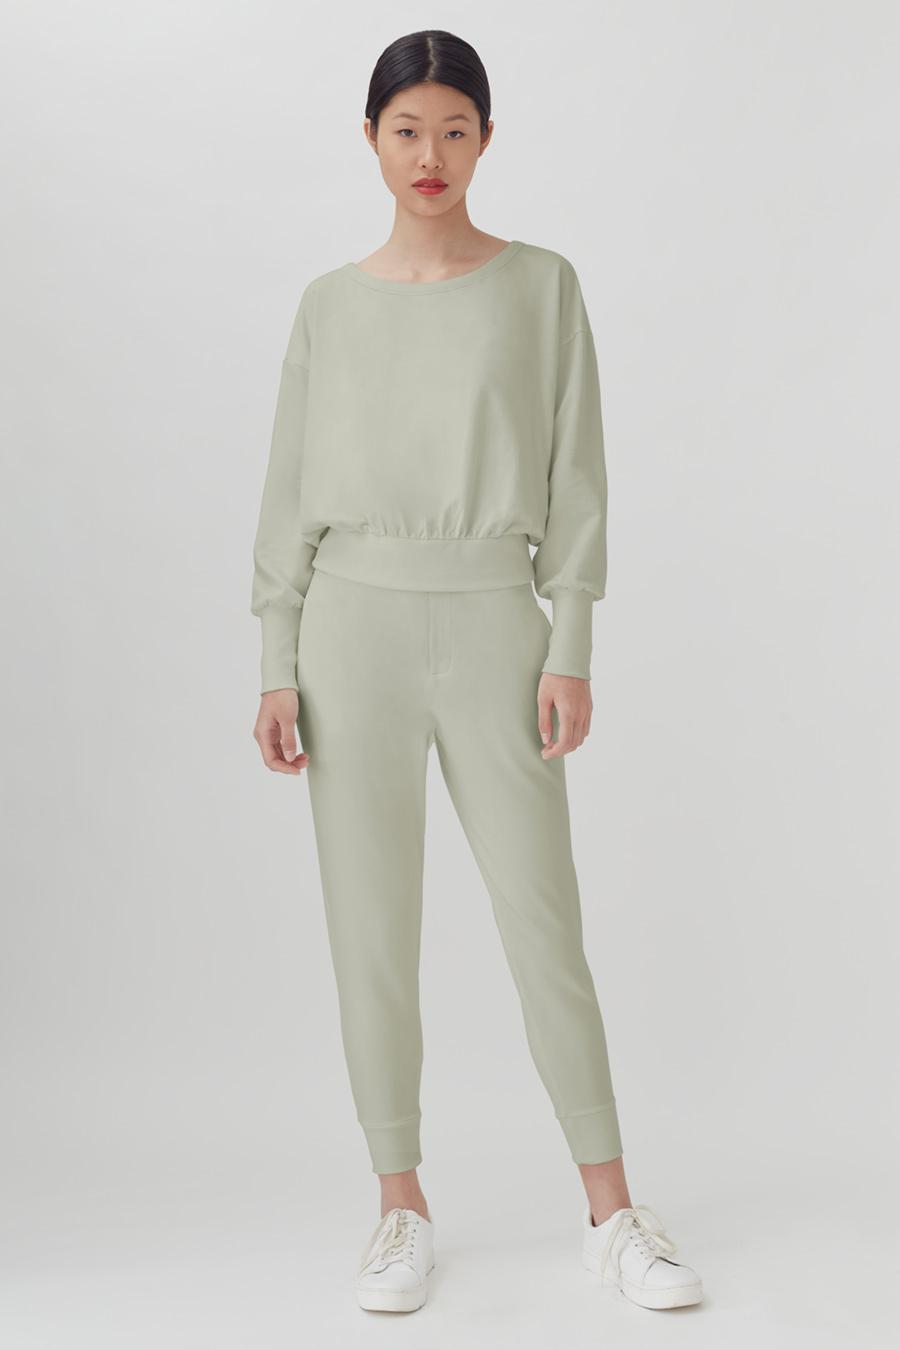 Women's French Terry Boatneck Sweatshirt in Sage | Size: 1